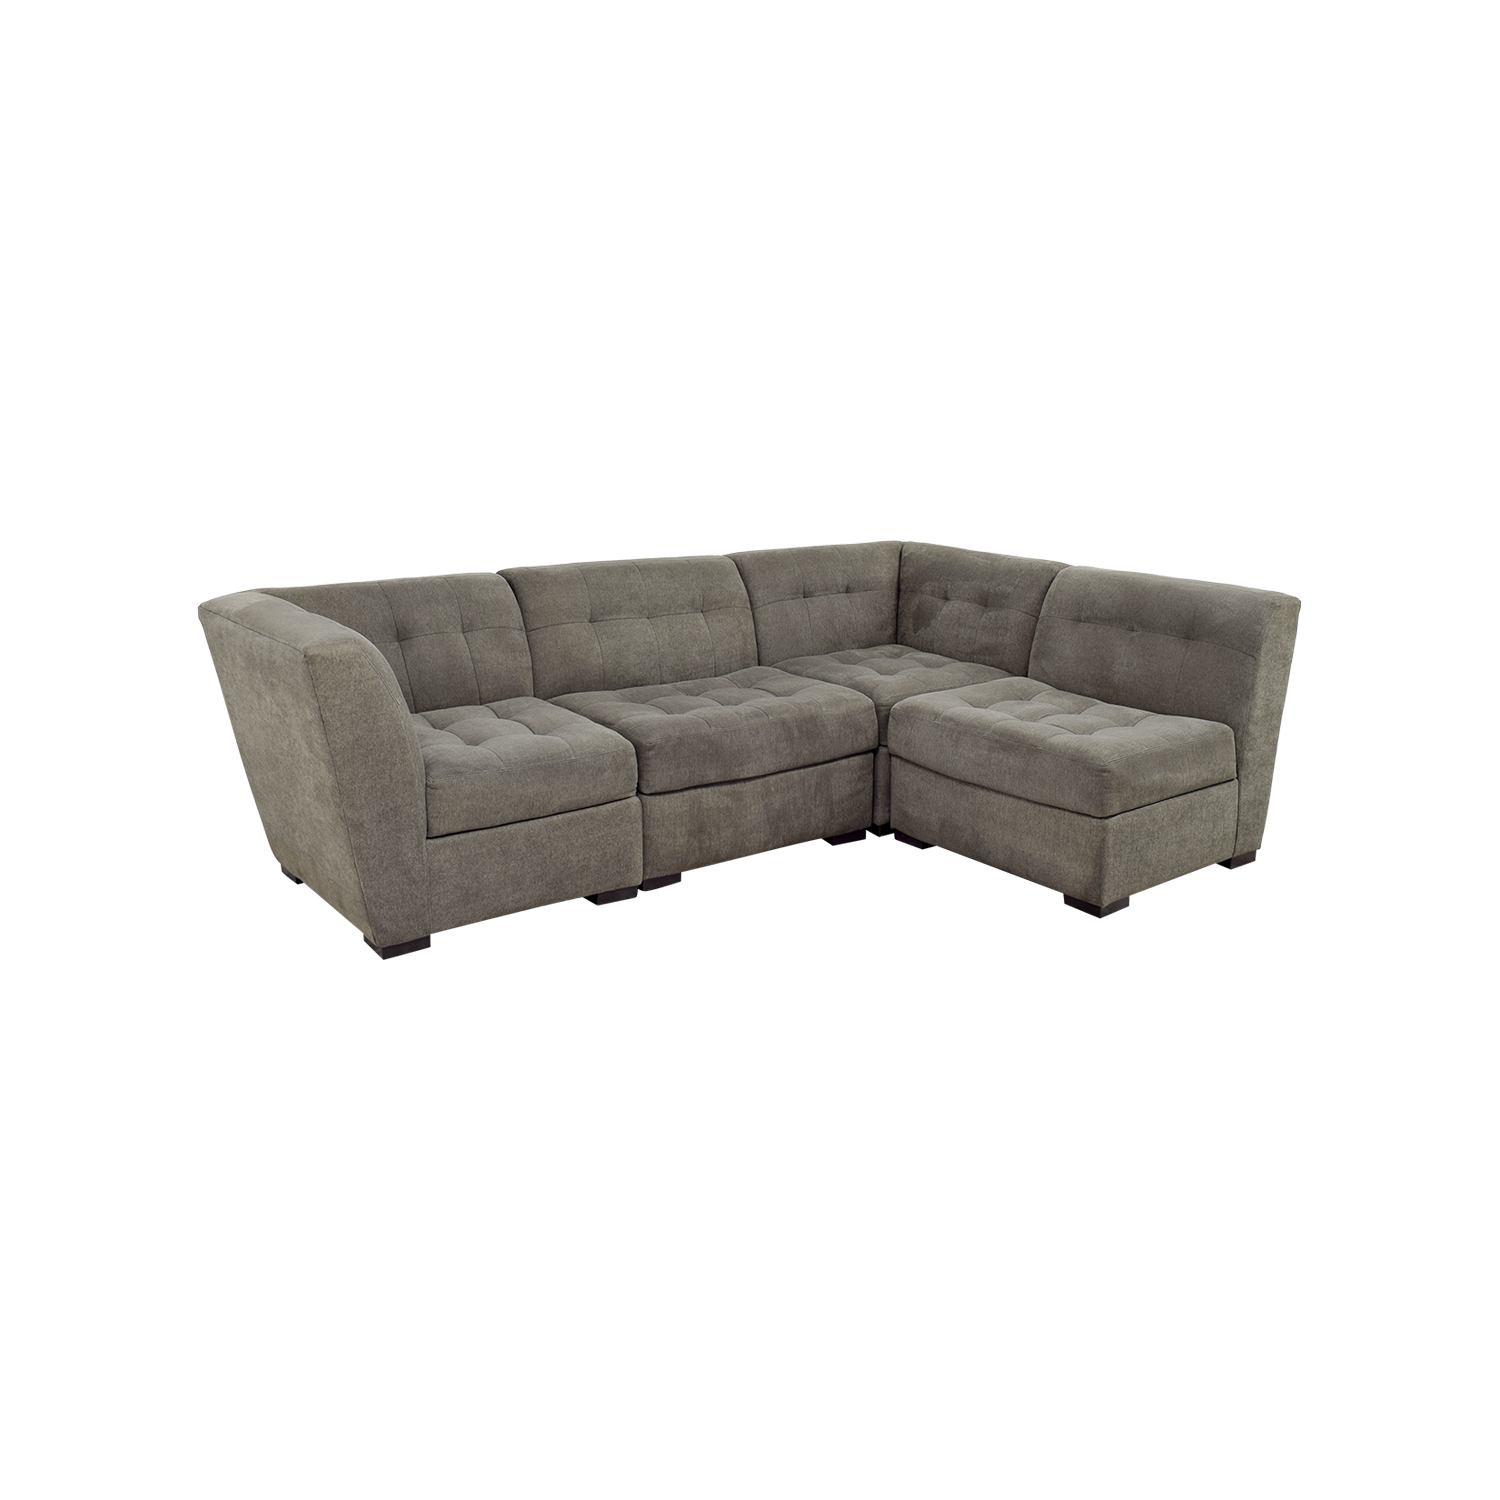 grain configurible toronto sectionals spaces top sofa of tremendous faux sofas design for sectional full leather modular small perth size